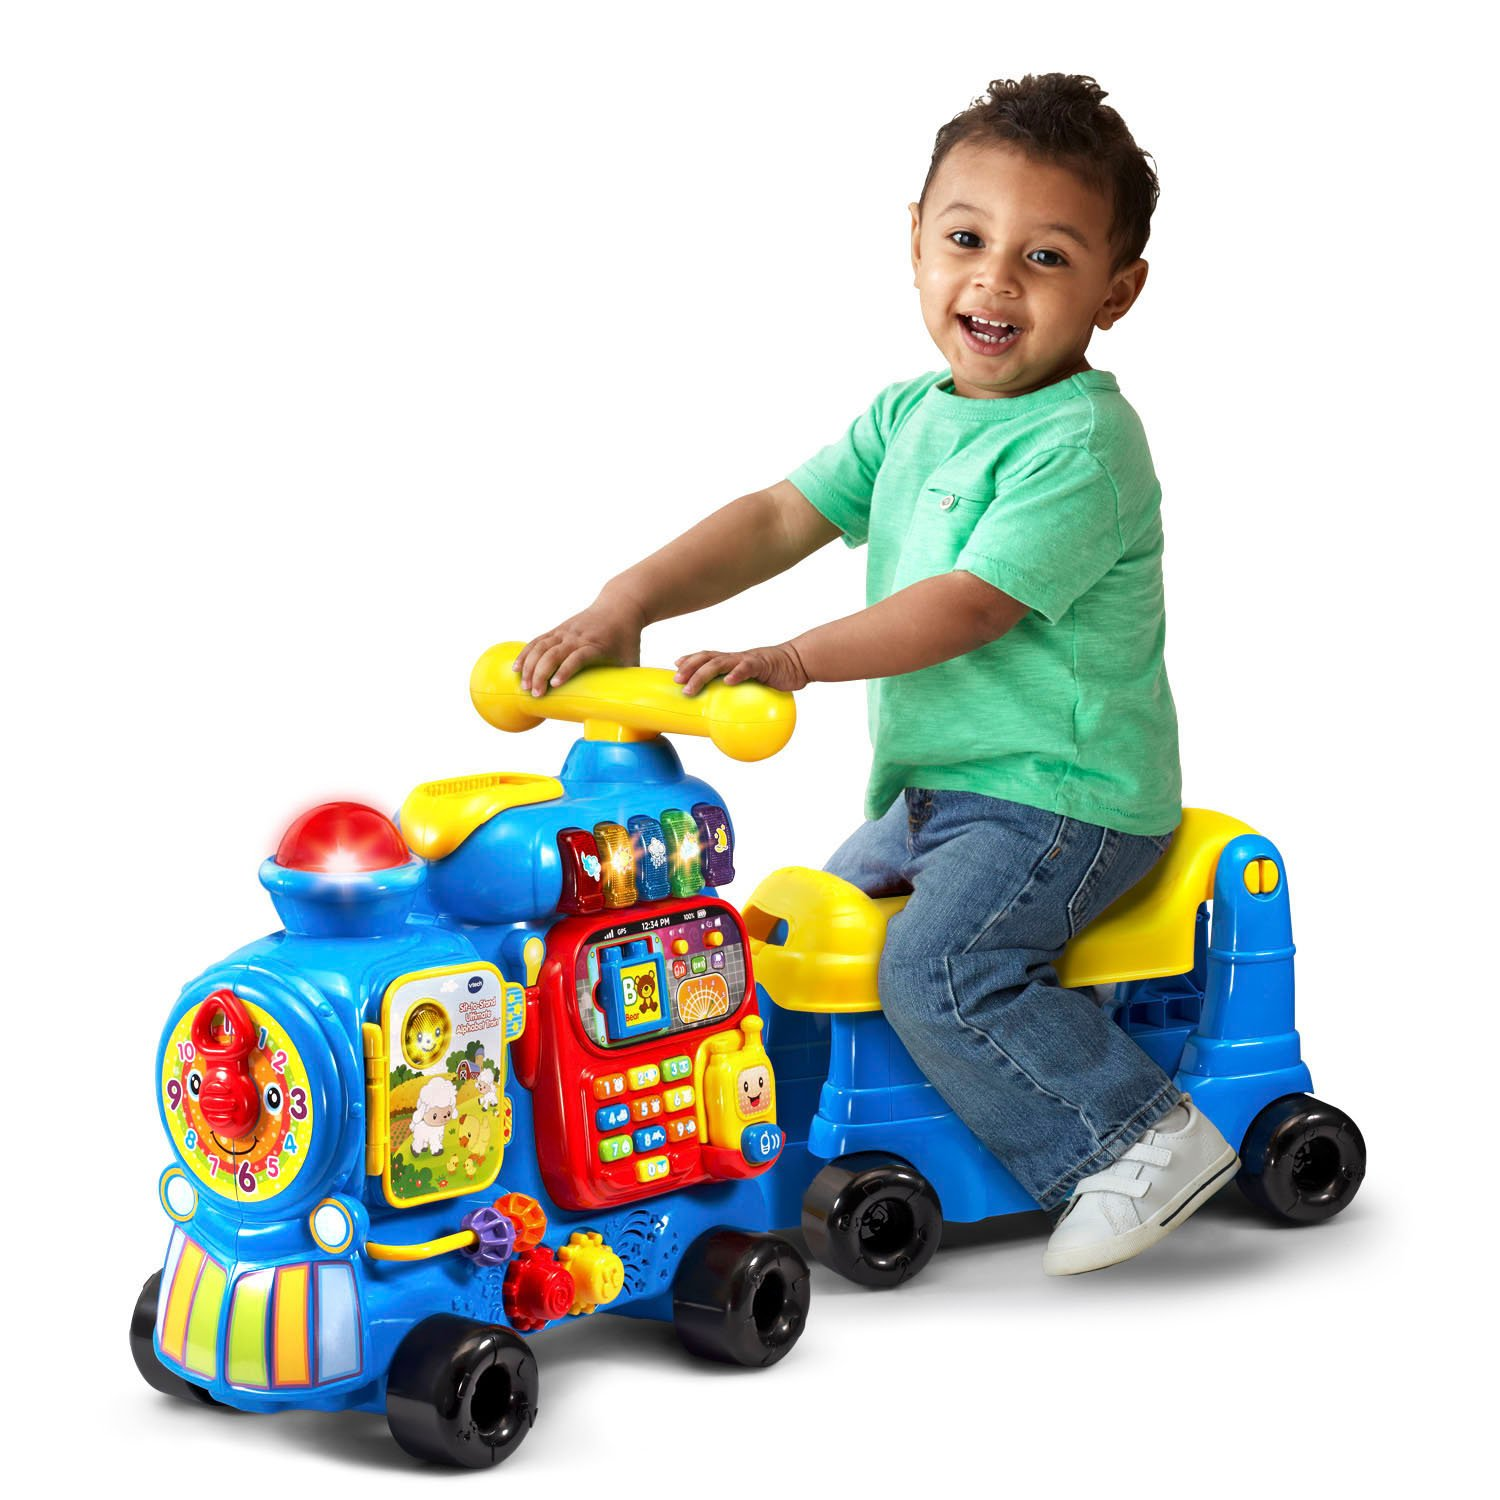 VTech Sit-to-Stand Ultimate Alphabet Train Amazon Exclusive, Blue by VTech (Image #1)